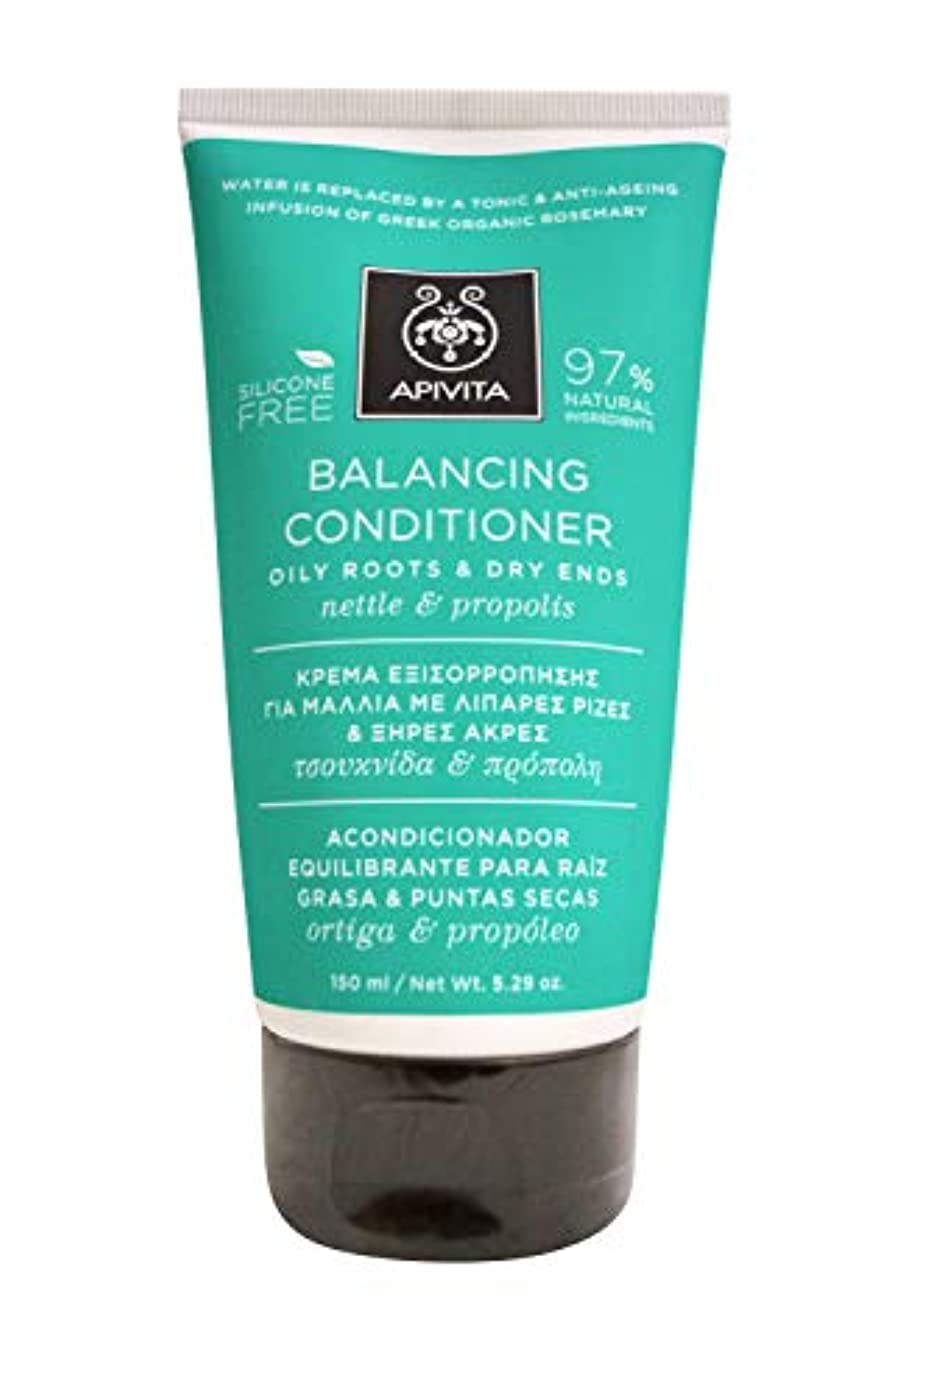 破壊的な窓ぼんやりしたアピヴィータ Balancing Conditioner with Nettle & Propolis (Oily Roots & Dry Ends) 150ml [並行輸入品]